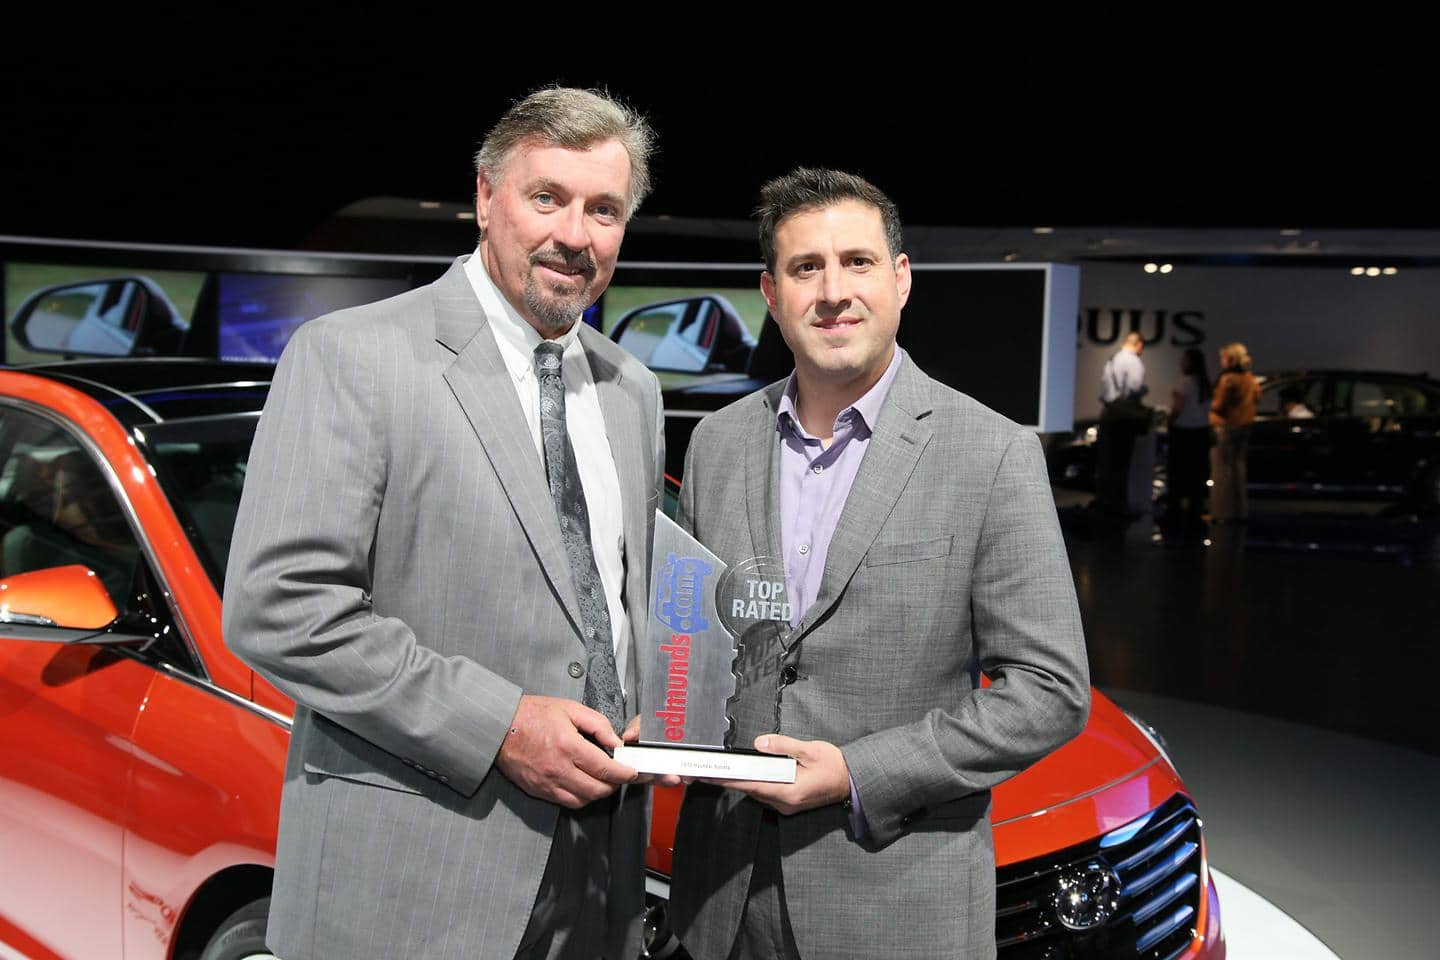 2015 Sonata Named A Top Rated Sedan By Edmunds.com